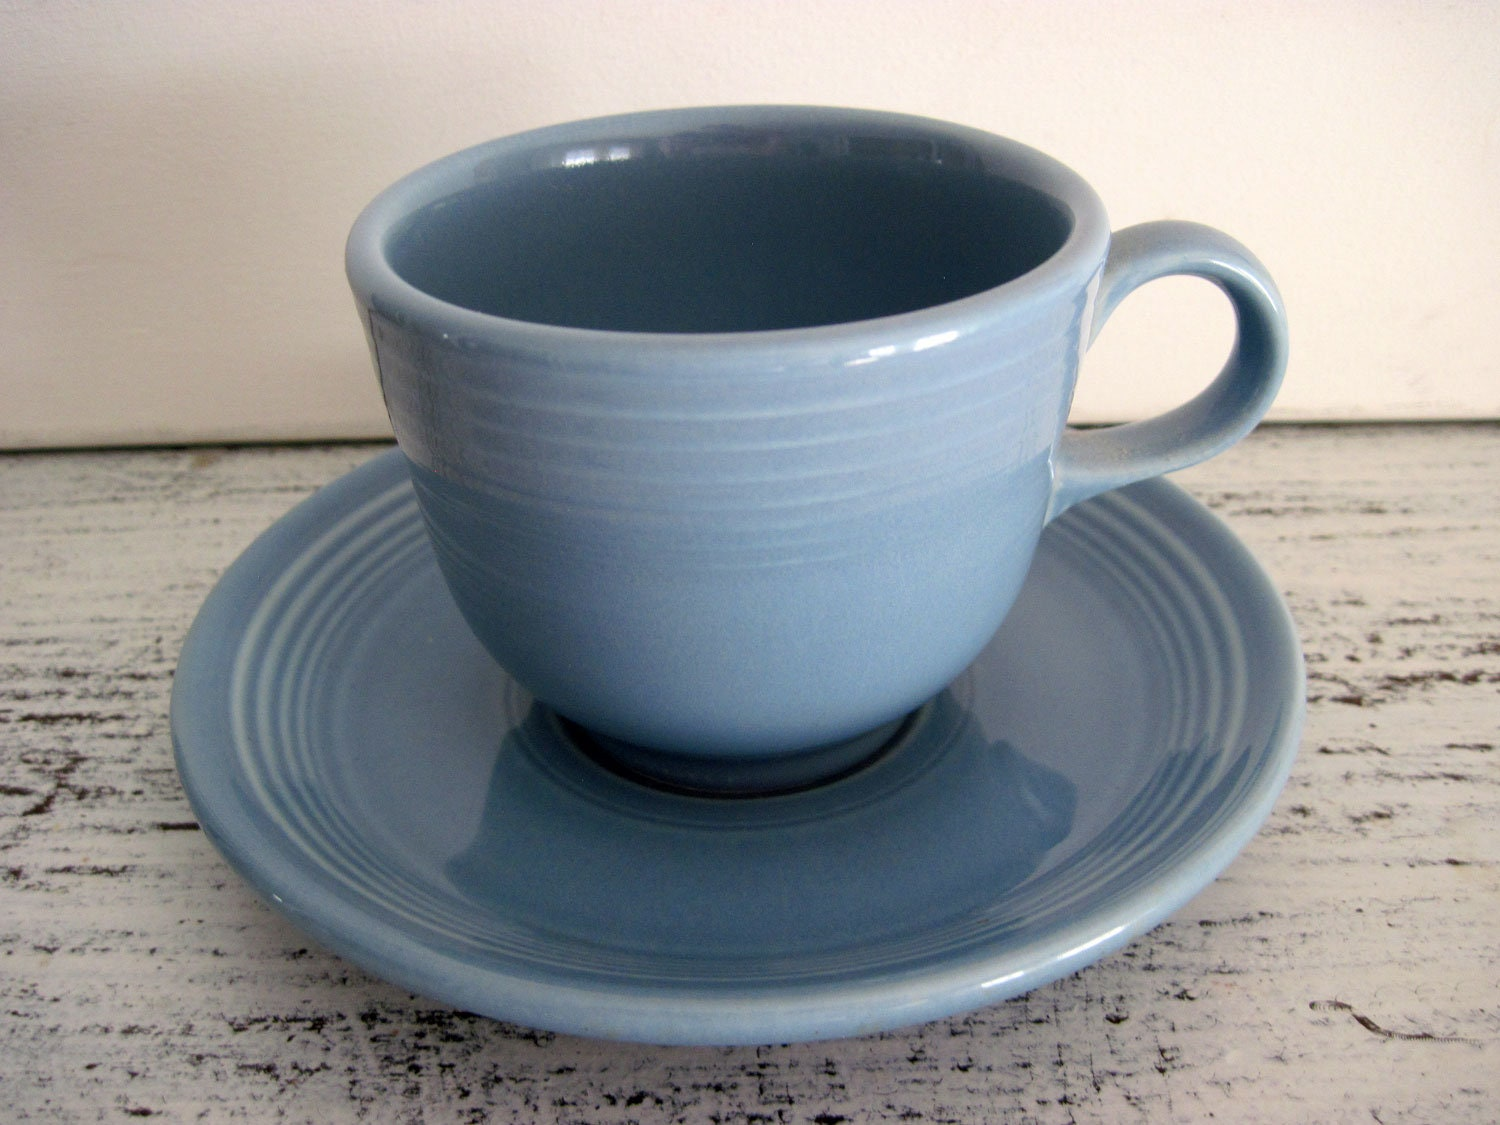 Homer Laughlin Fiesta Fiestaware Tea Cup and Saucer Set Many Colors-You Choose!